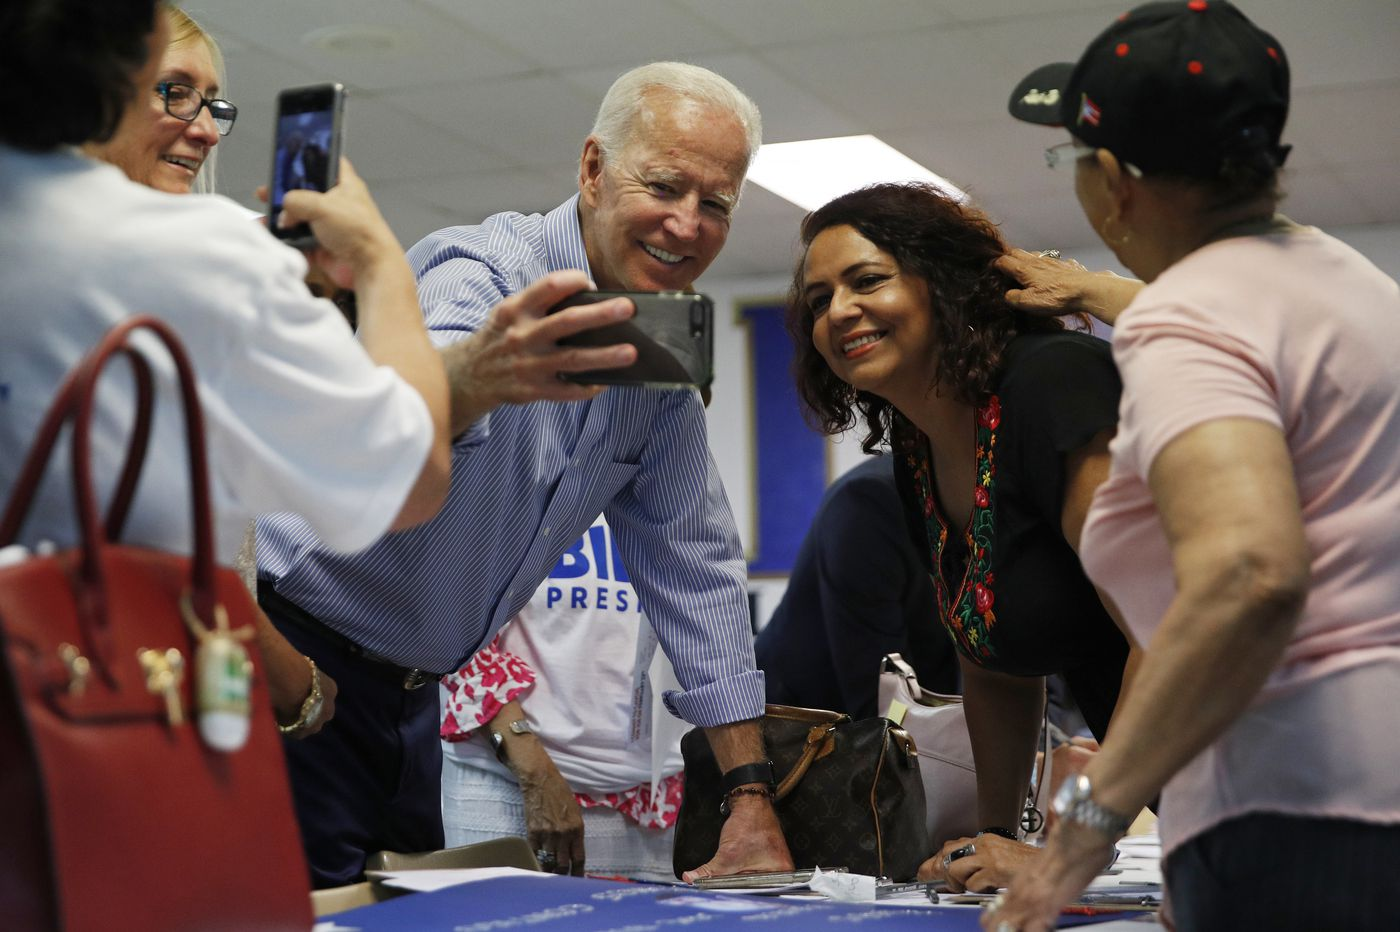 Joe Biden's big black wall: Does African American support make the ex-VP unbeatable? | Will Bunch